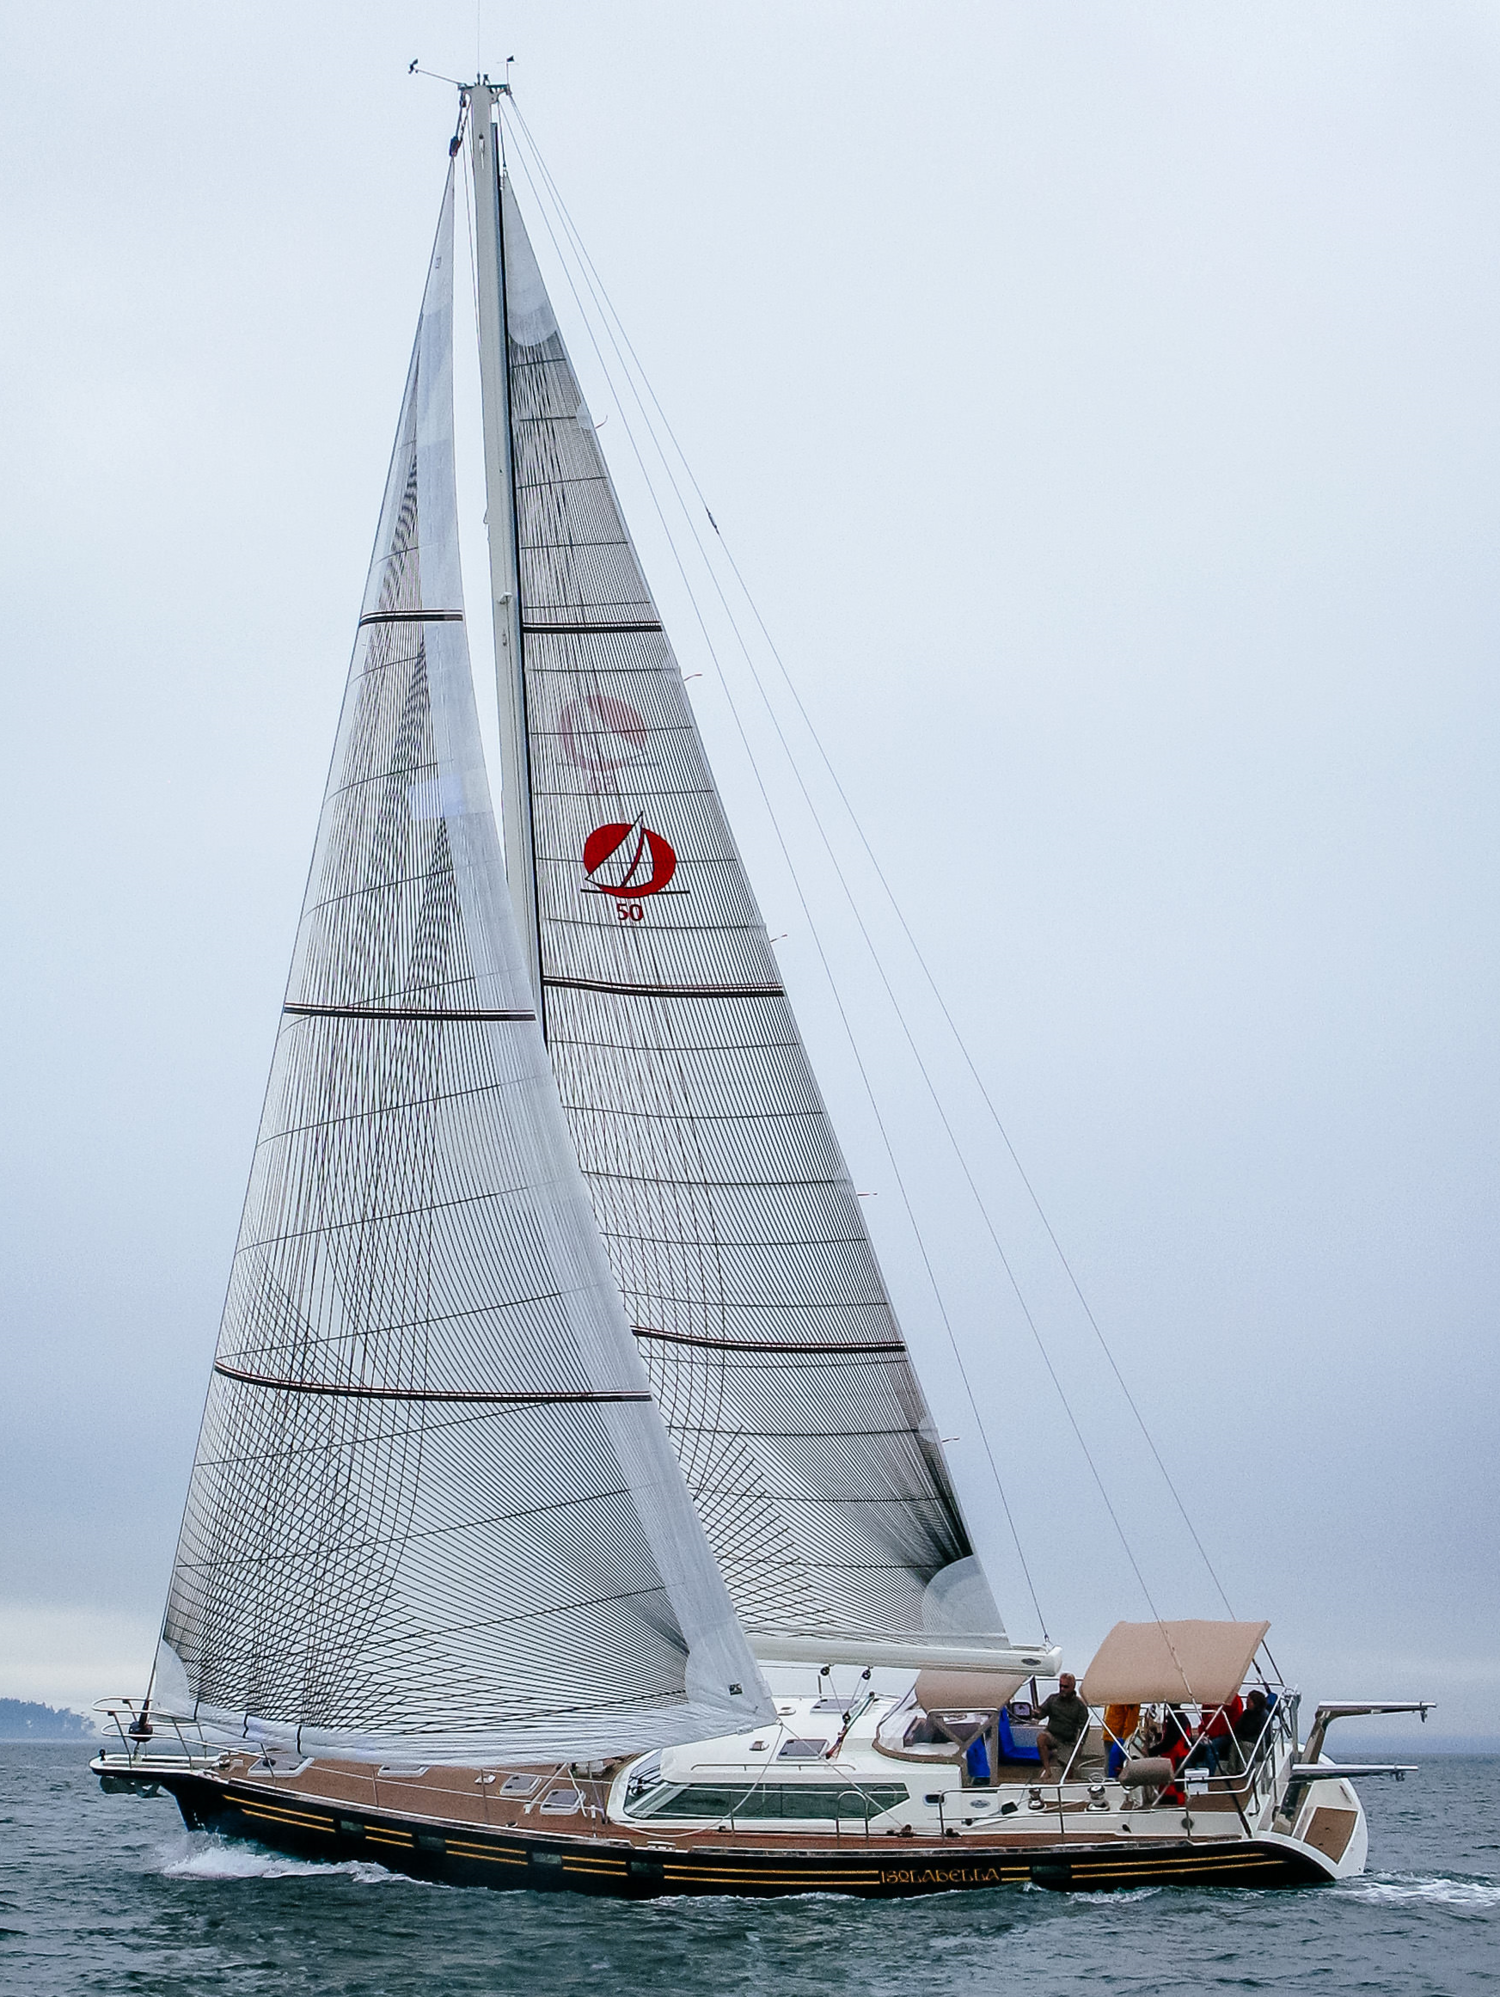 A Waterline Yachts 50 with Tape-Drive carbon Spectra performance cruising roller-reefing genoa and mainsail. Notice the 3 reef points that include sets of tapes to carry the reefed luff loads.